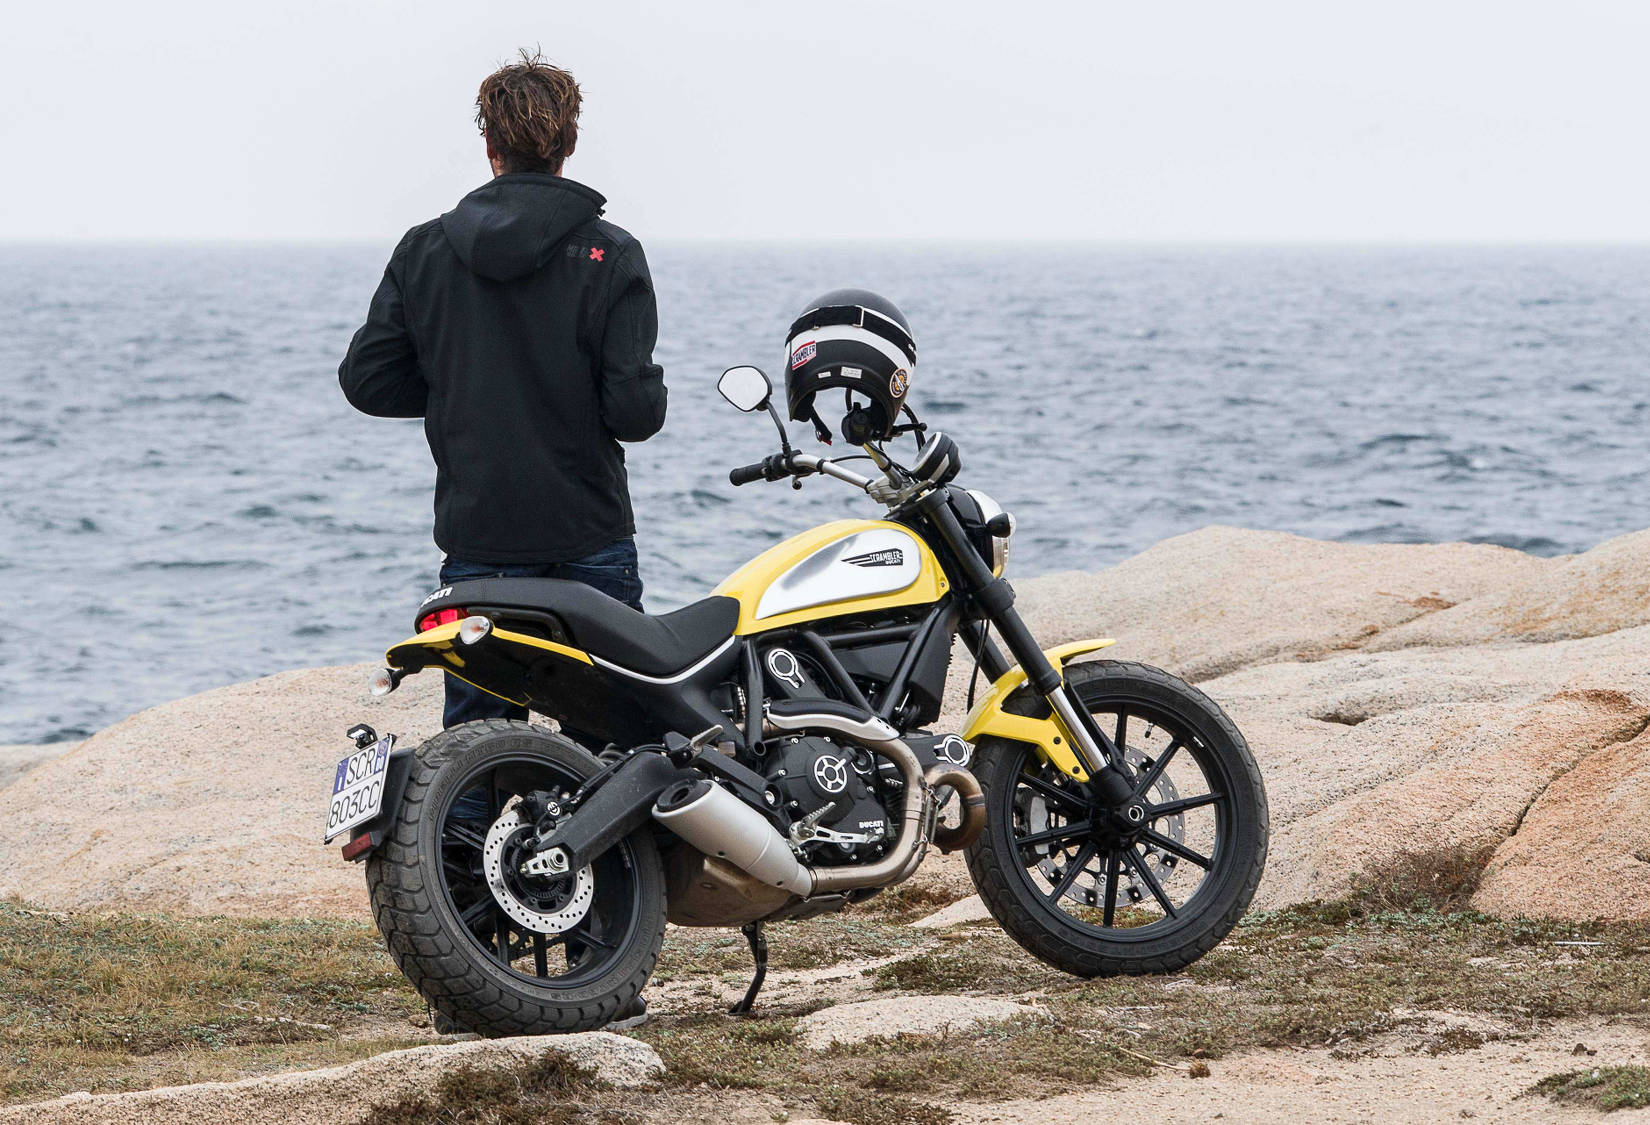 ducati scrambler ready for anything « motorcycledaily